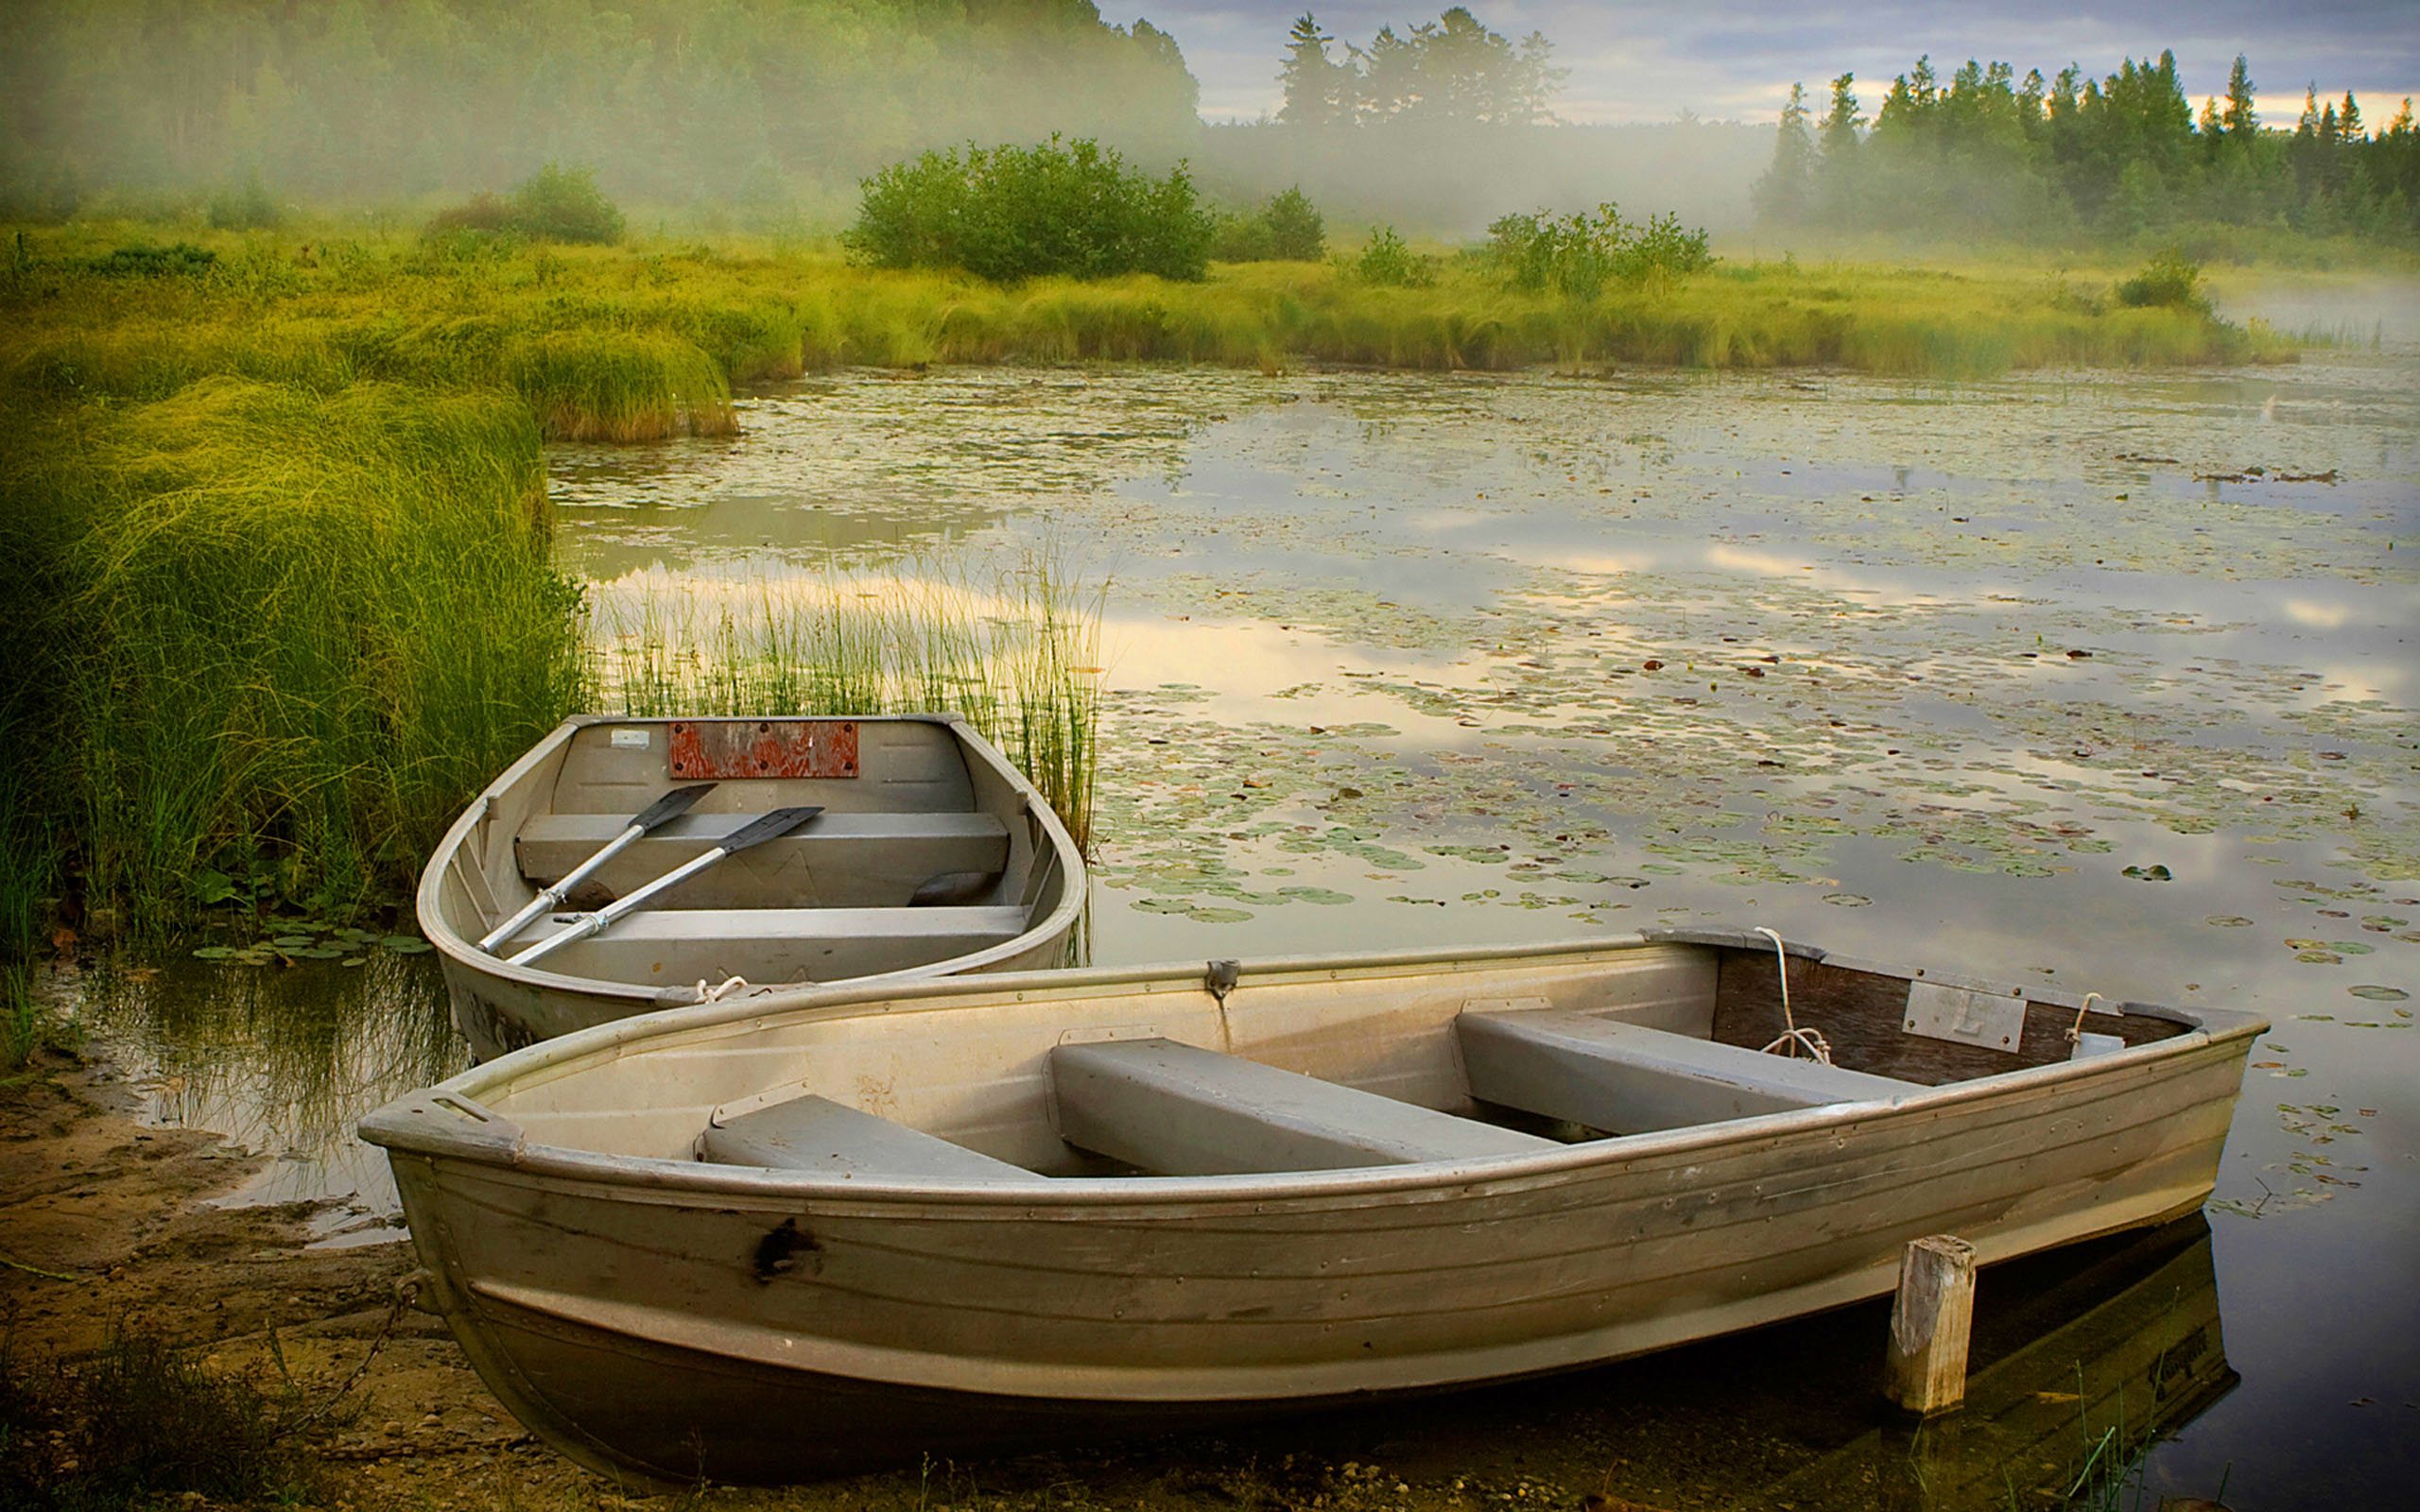 Snow Falling Wallpaper For Ipad Lake Boats Reed In Misty Morning Background Hd Quality